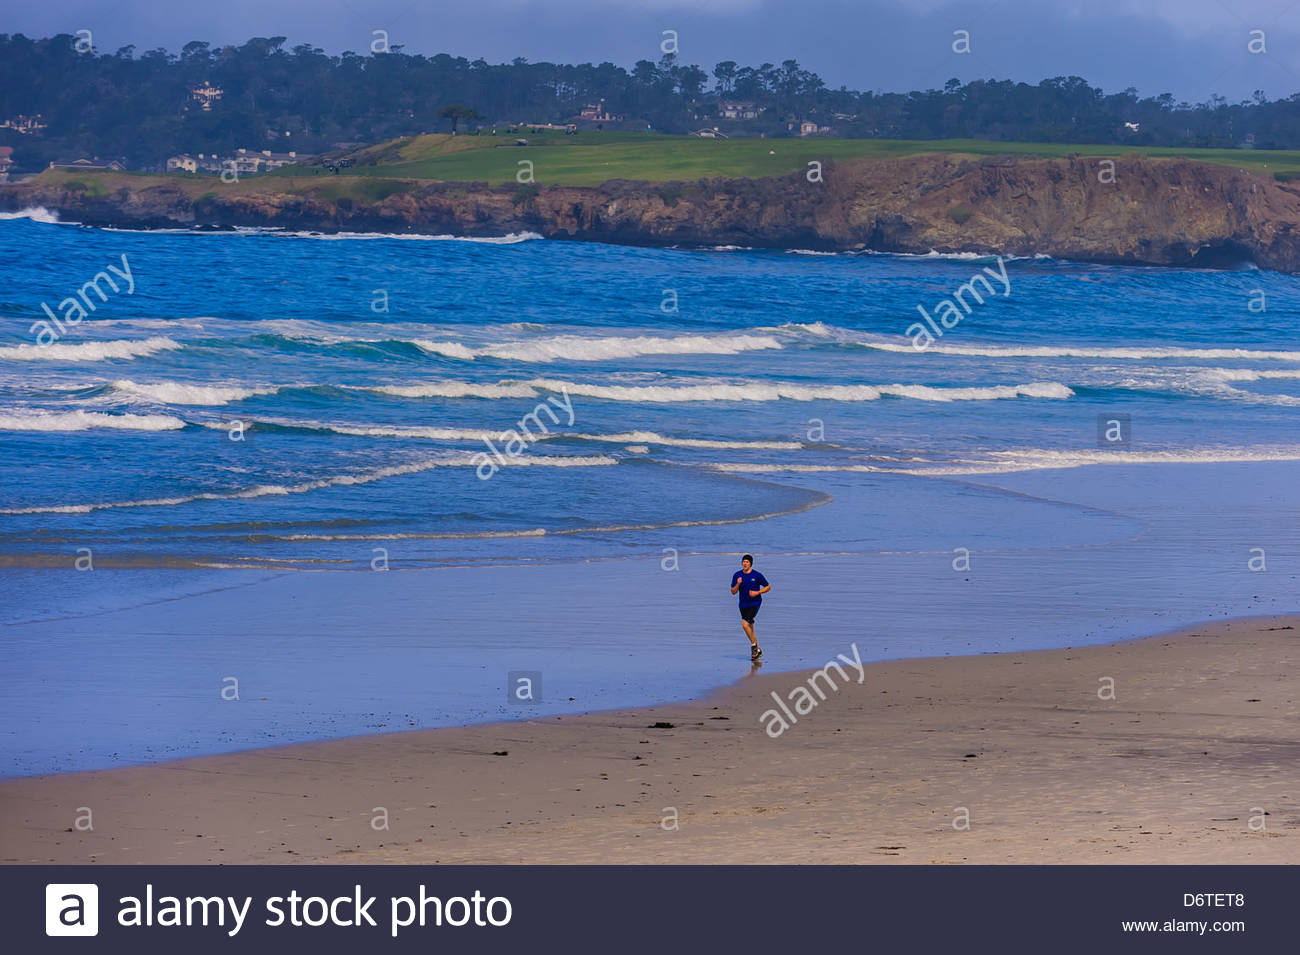 Beach scene, Carmel, Monterey County, California, USA - Stock Image